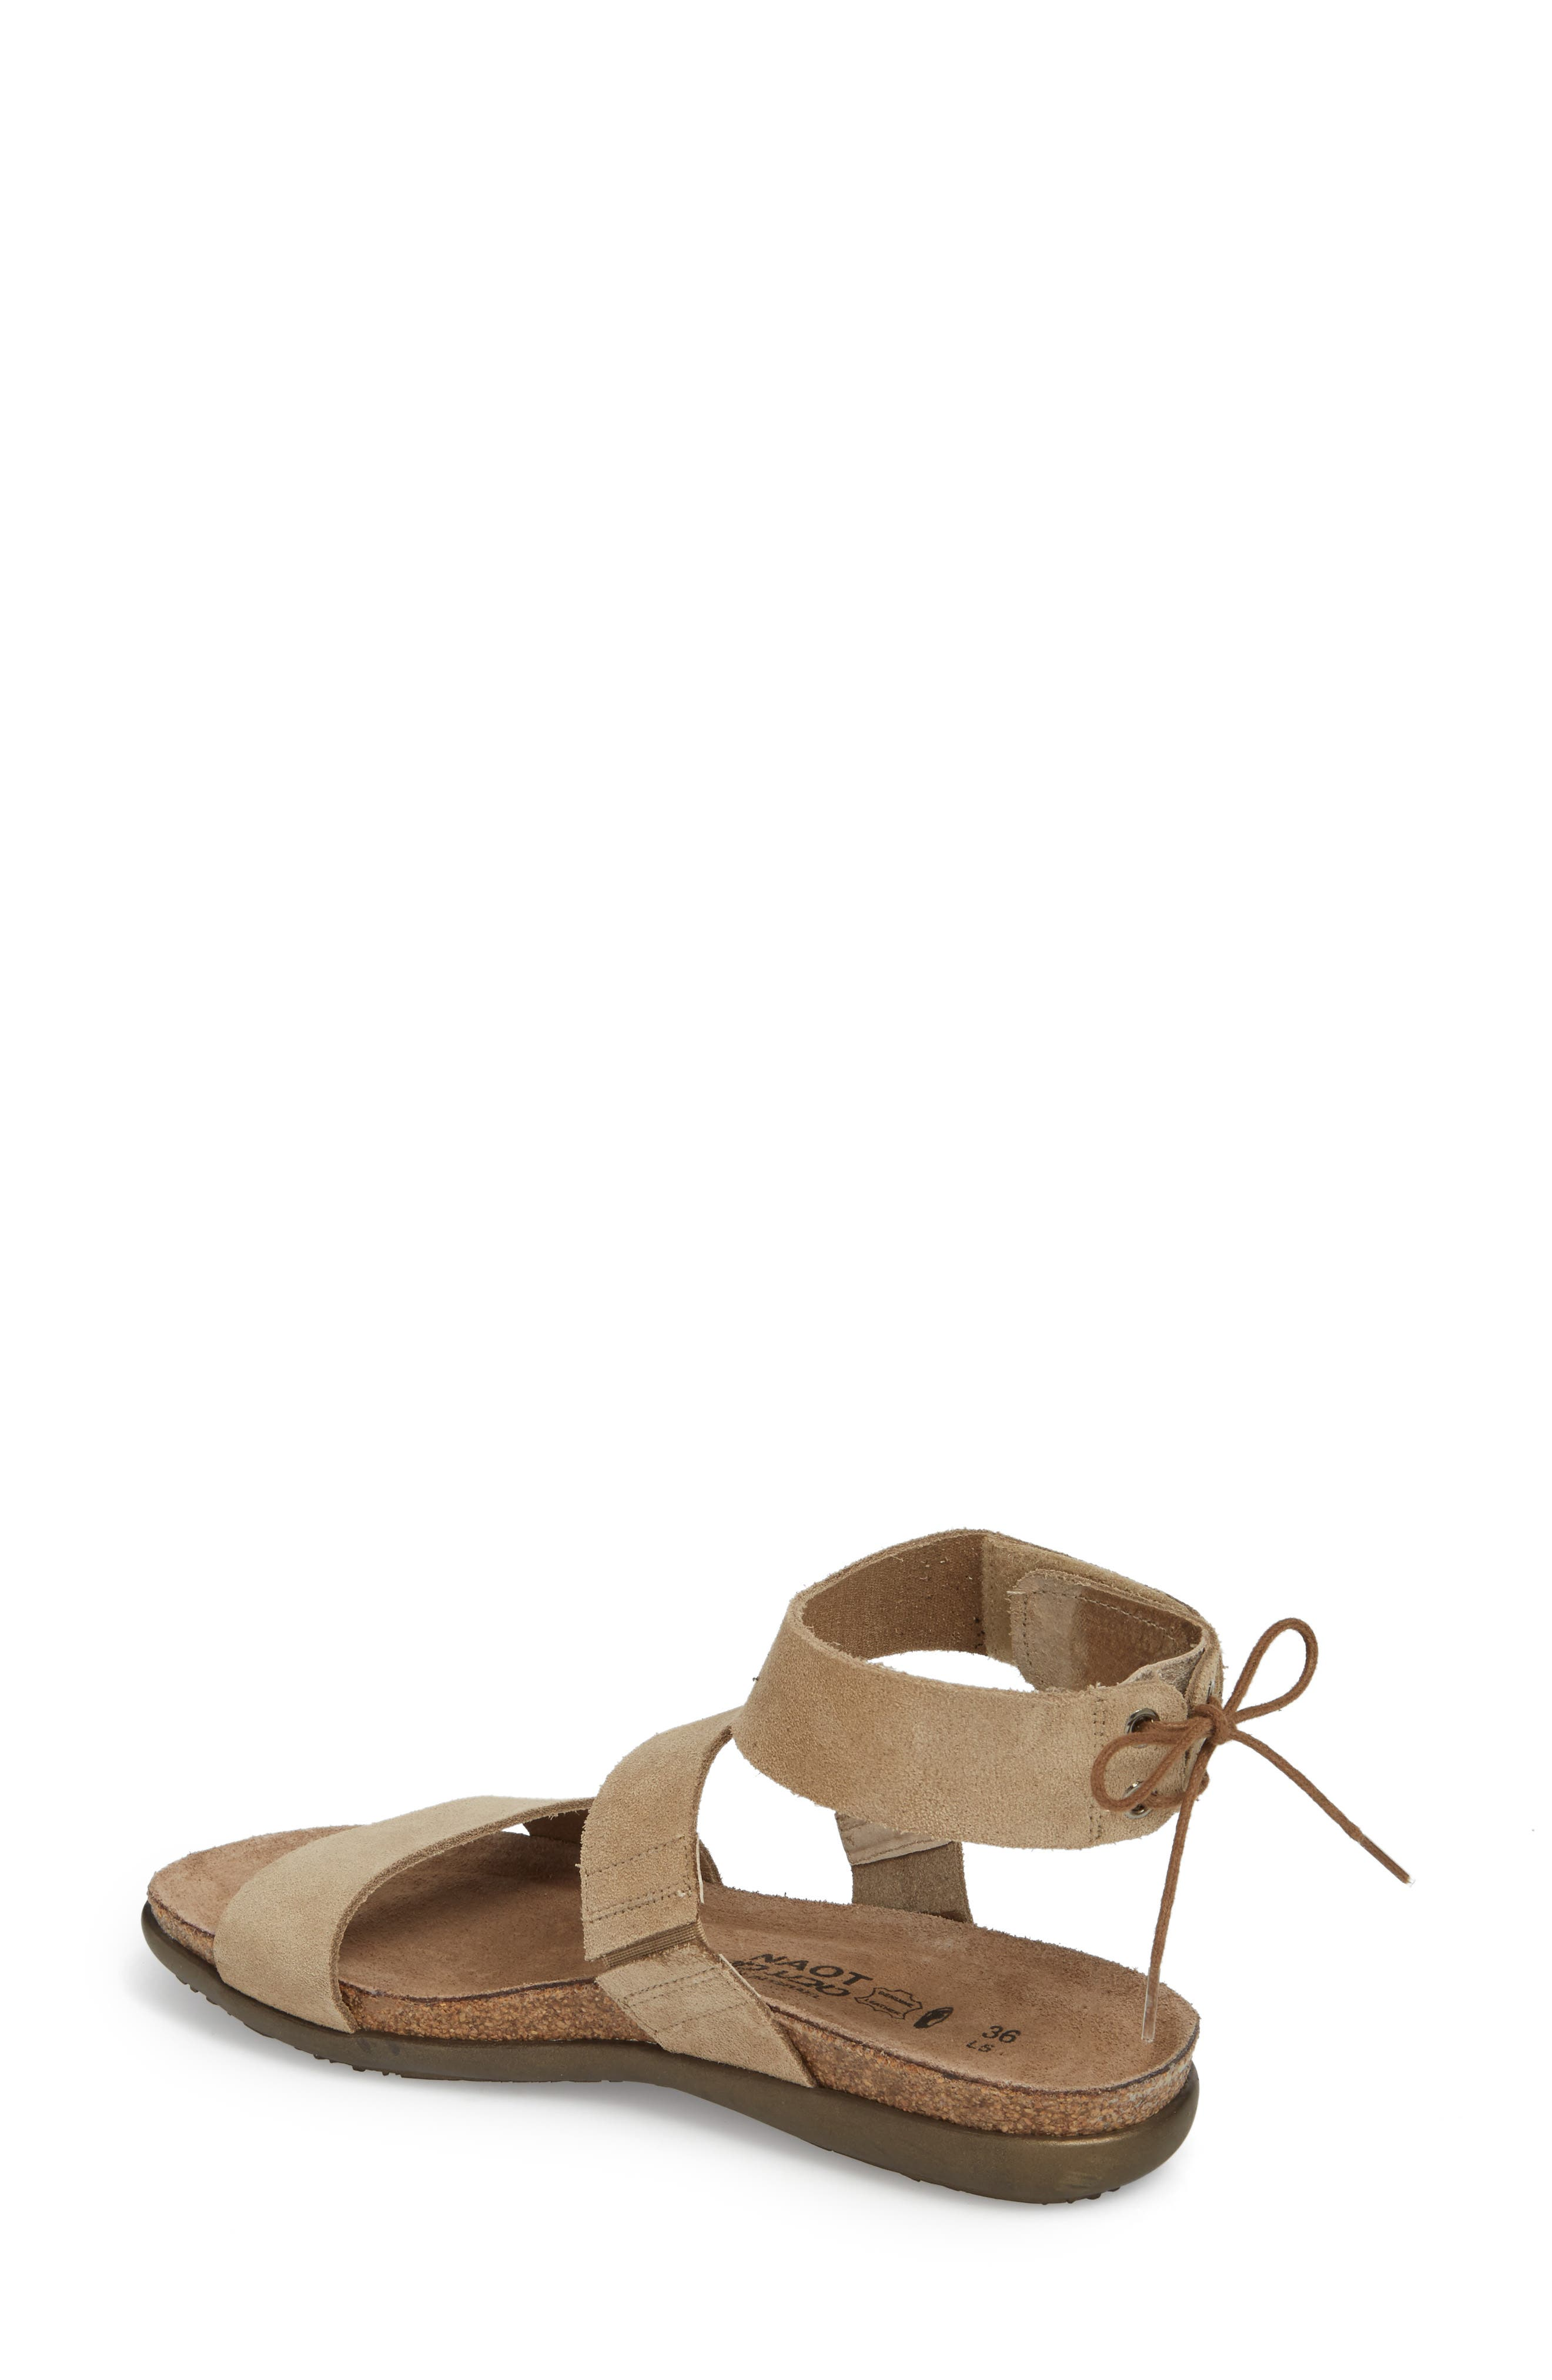 Larissa Ankle Strap Sandal,                             Alternate thumbnail 7, color,